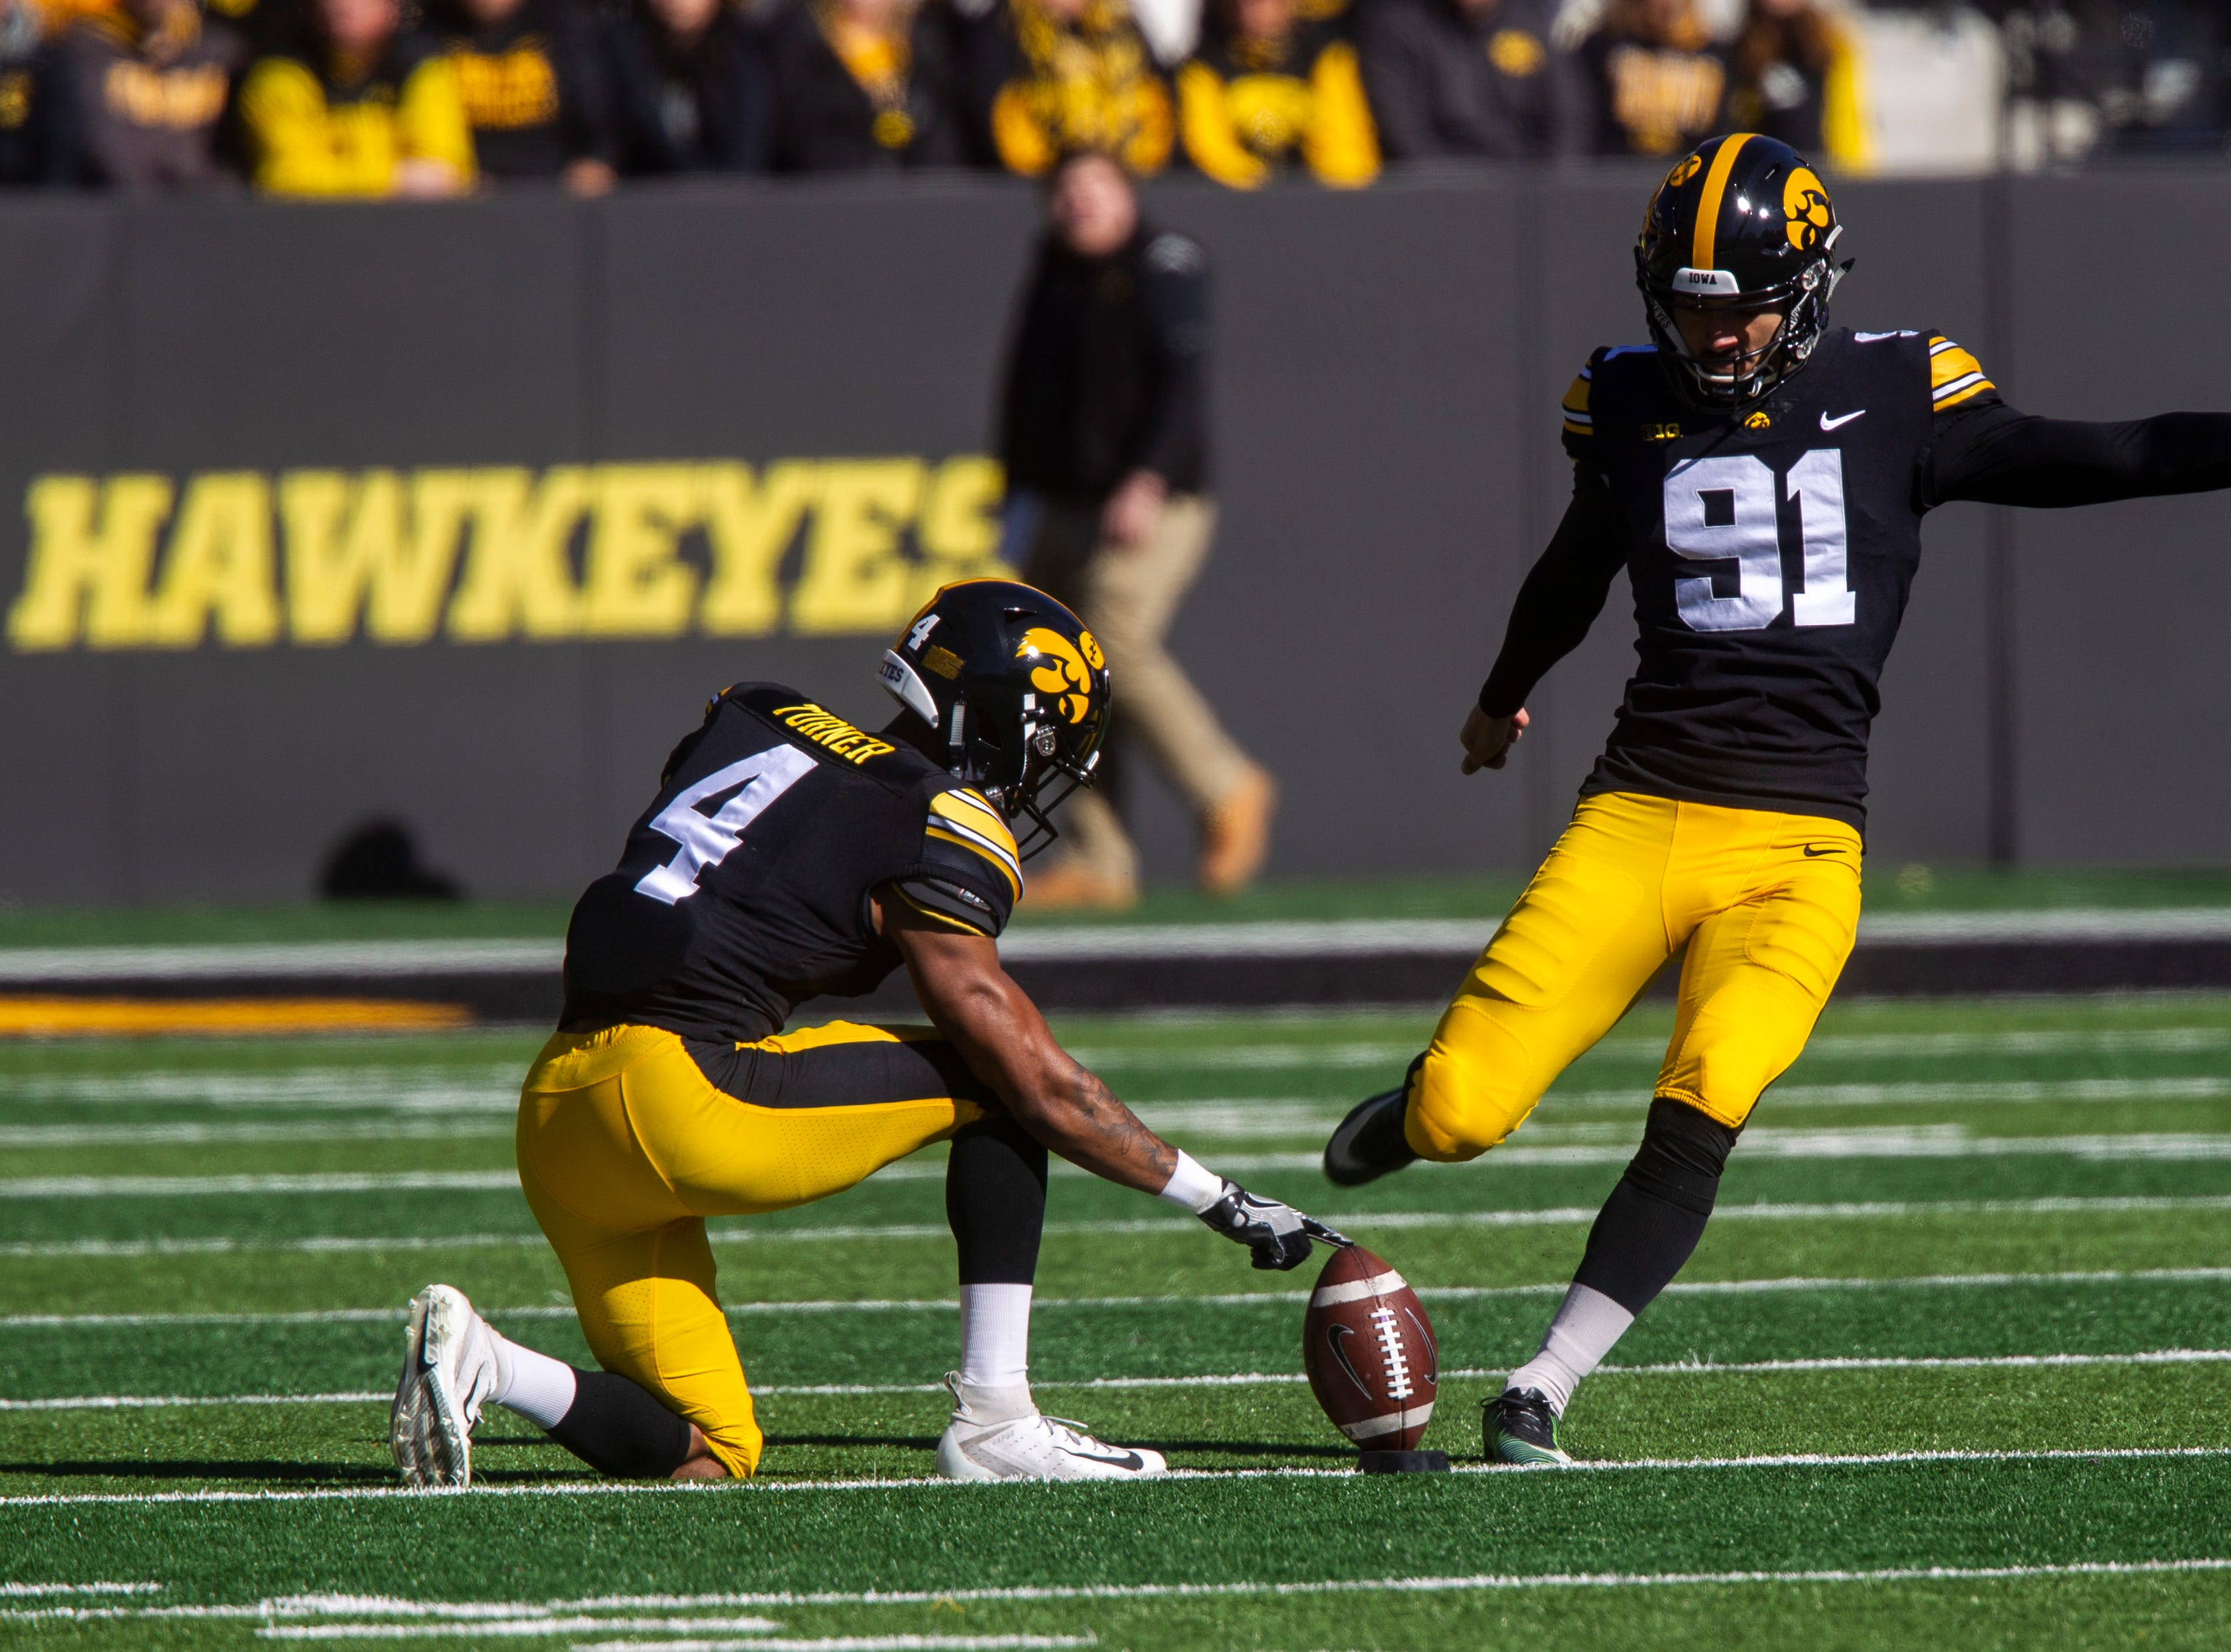 Iowa placekicker Miguel Recinos (91) kicks off while Iowa defensive back Josh Turner (4) holds the ball in the wind during an NCAA Big Ten conference football game on Saturday, Oct. 20, 2018, at Kinnick Stadium in Iowa City.